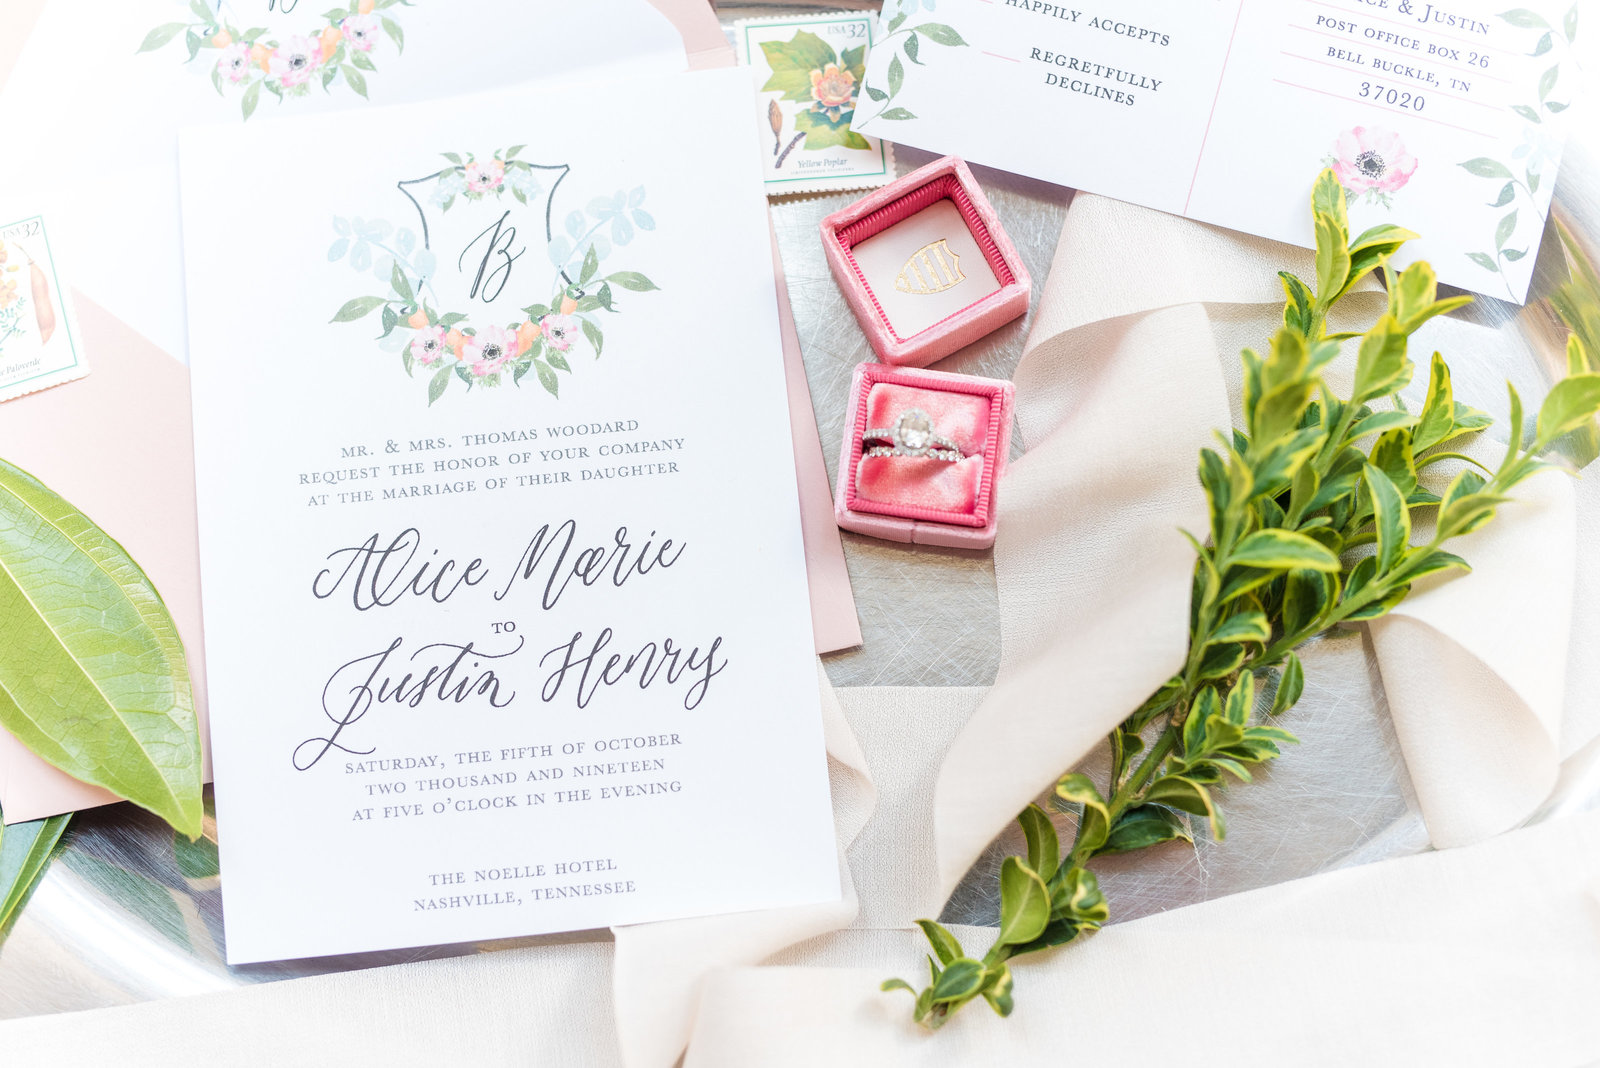 Nashville Tennessee Wedding Details Invitation Suite Florals